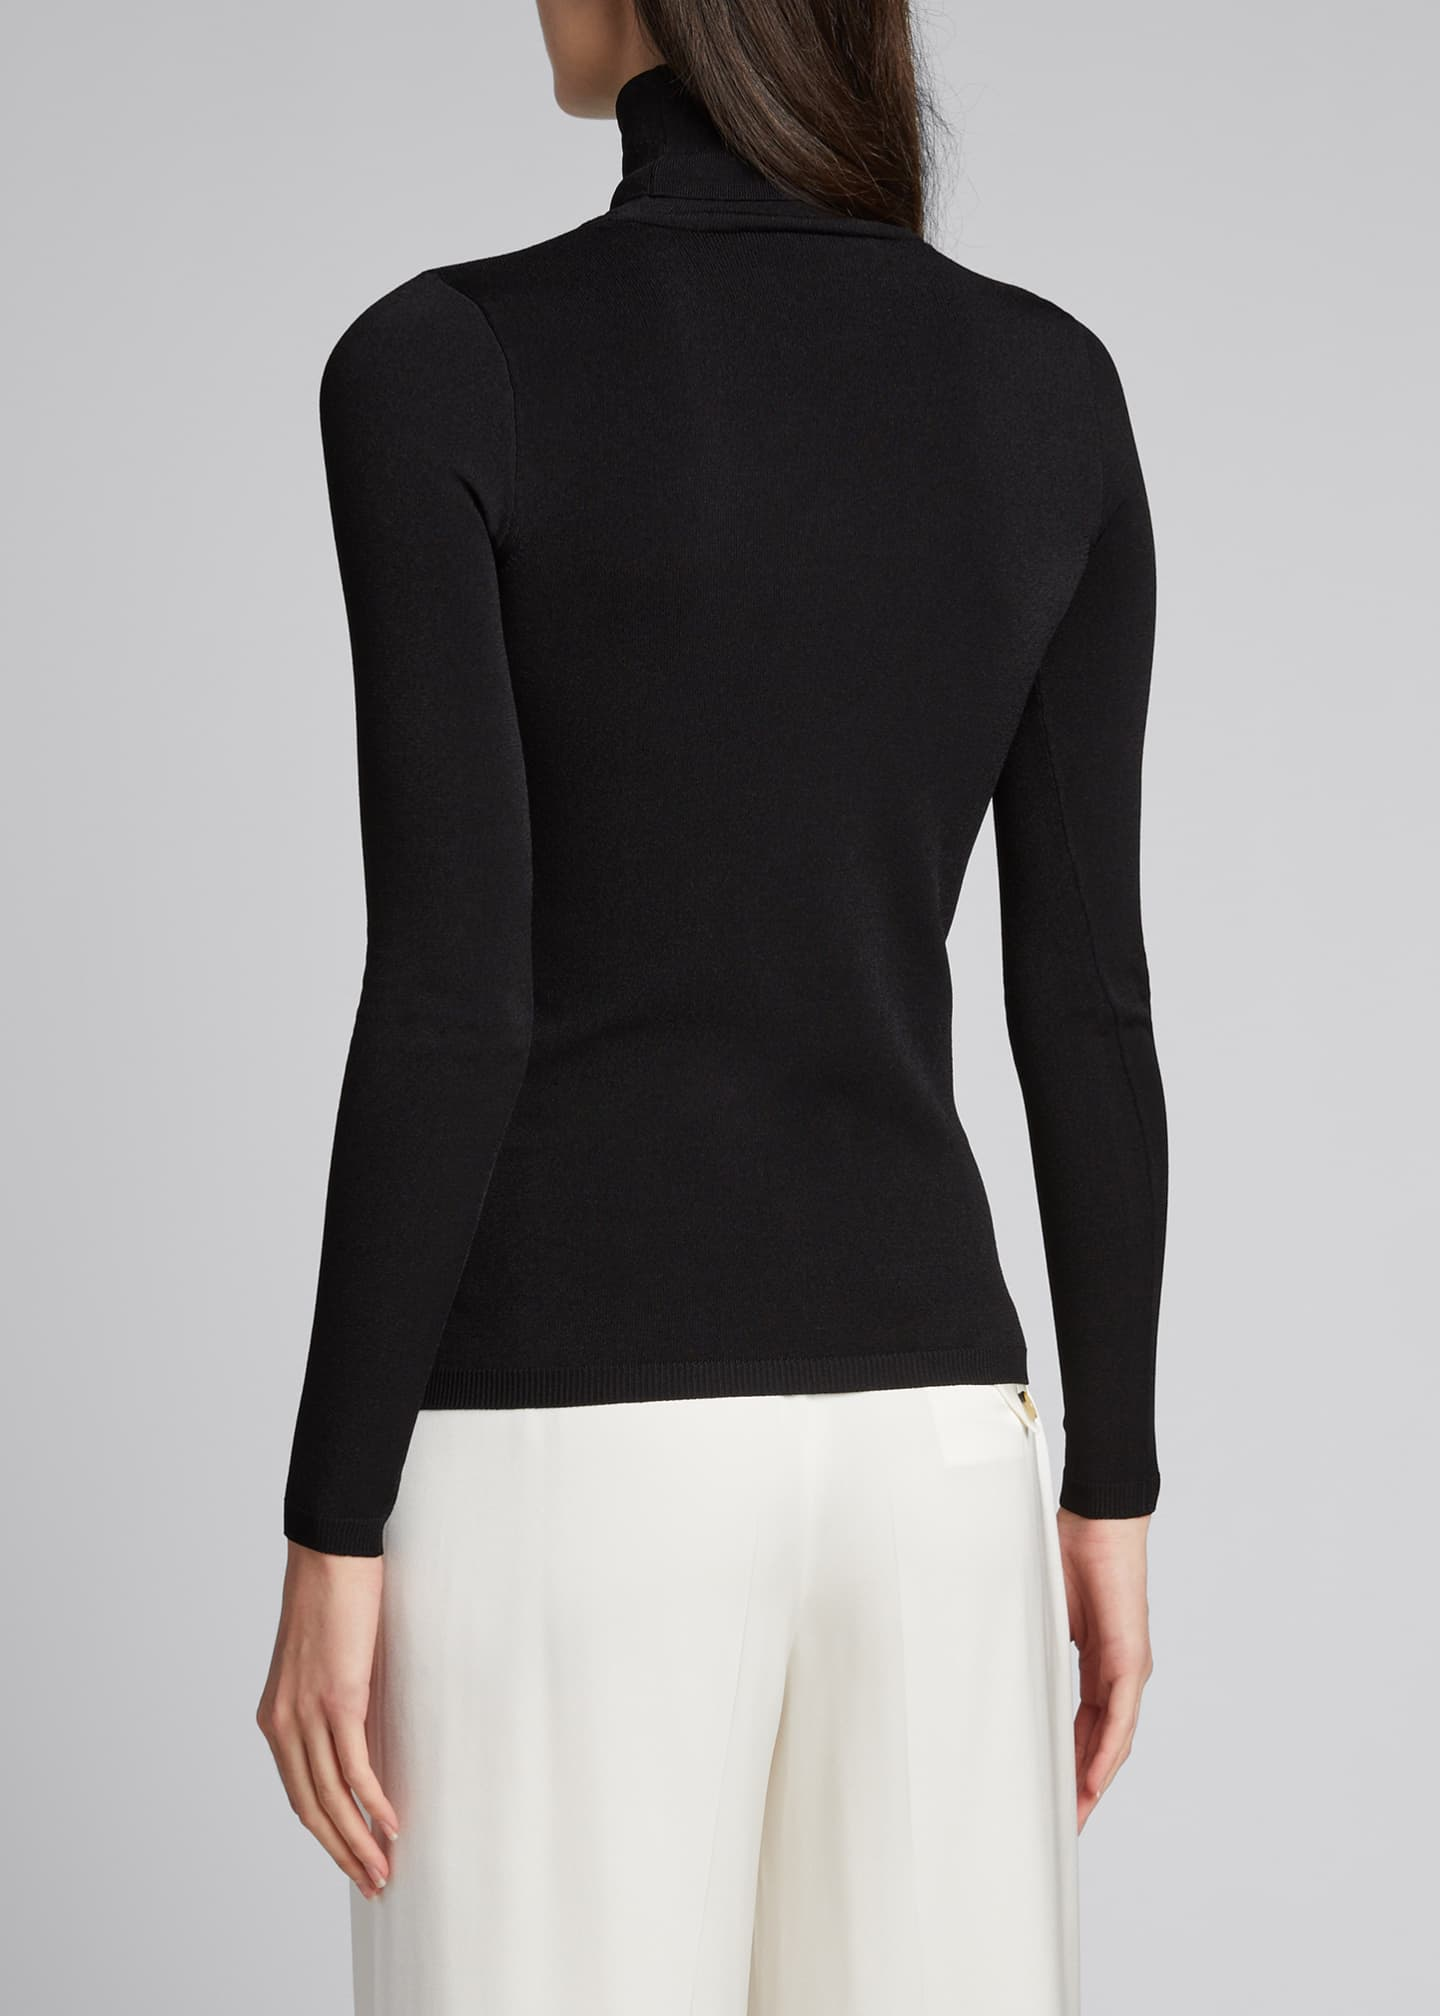 Image 2 of 5: Compact Knit Turtleneck Sweater